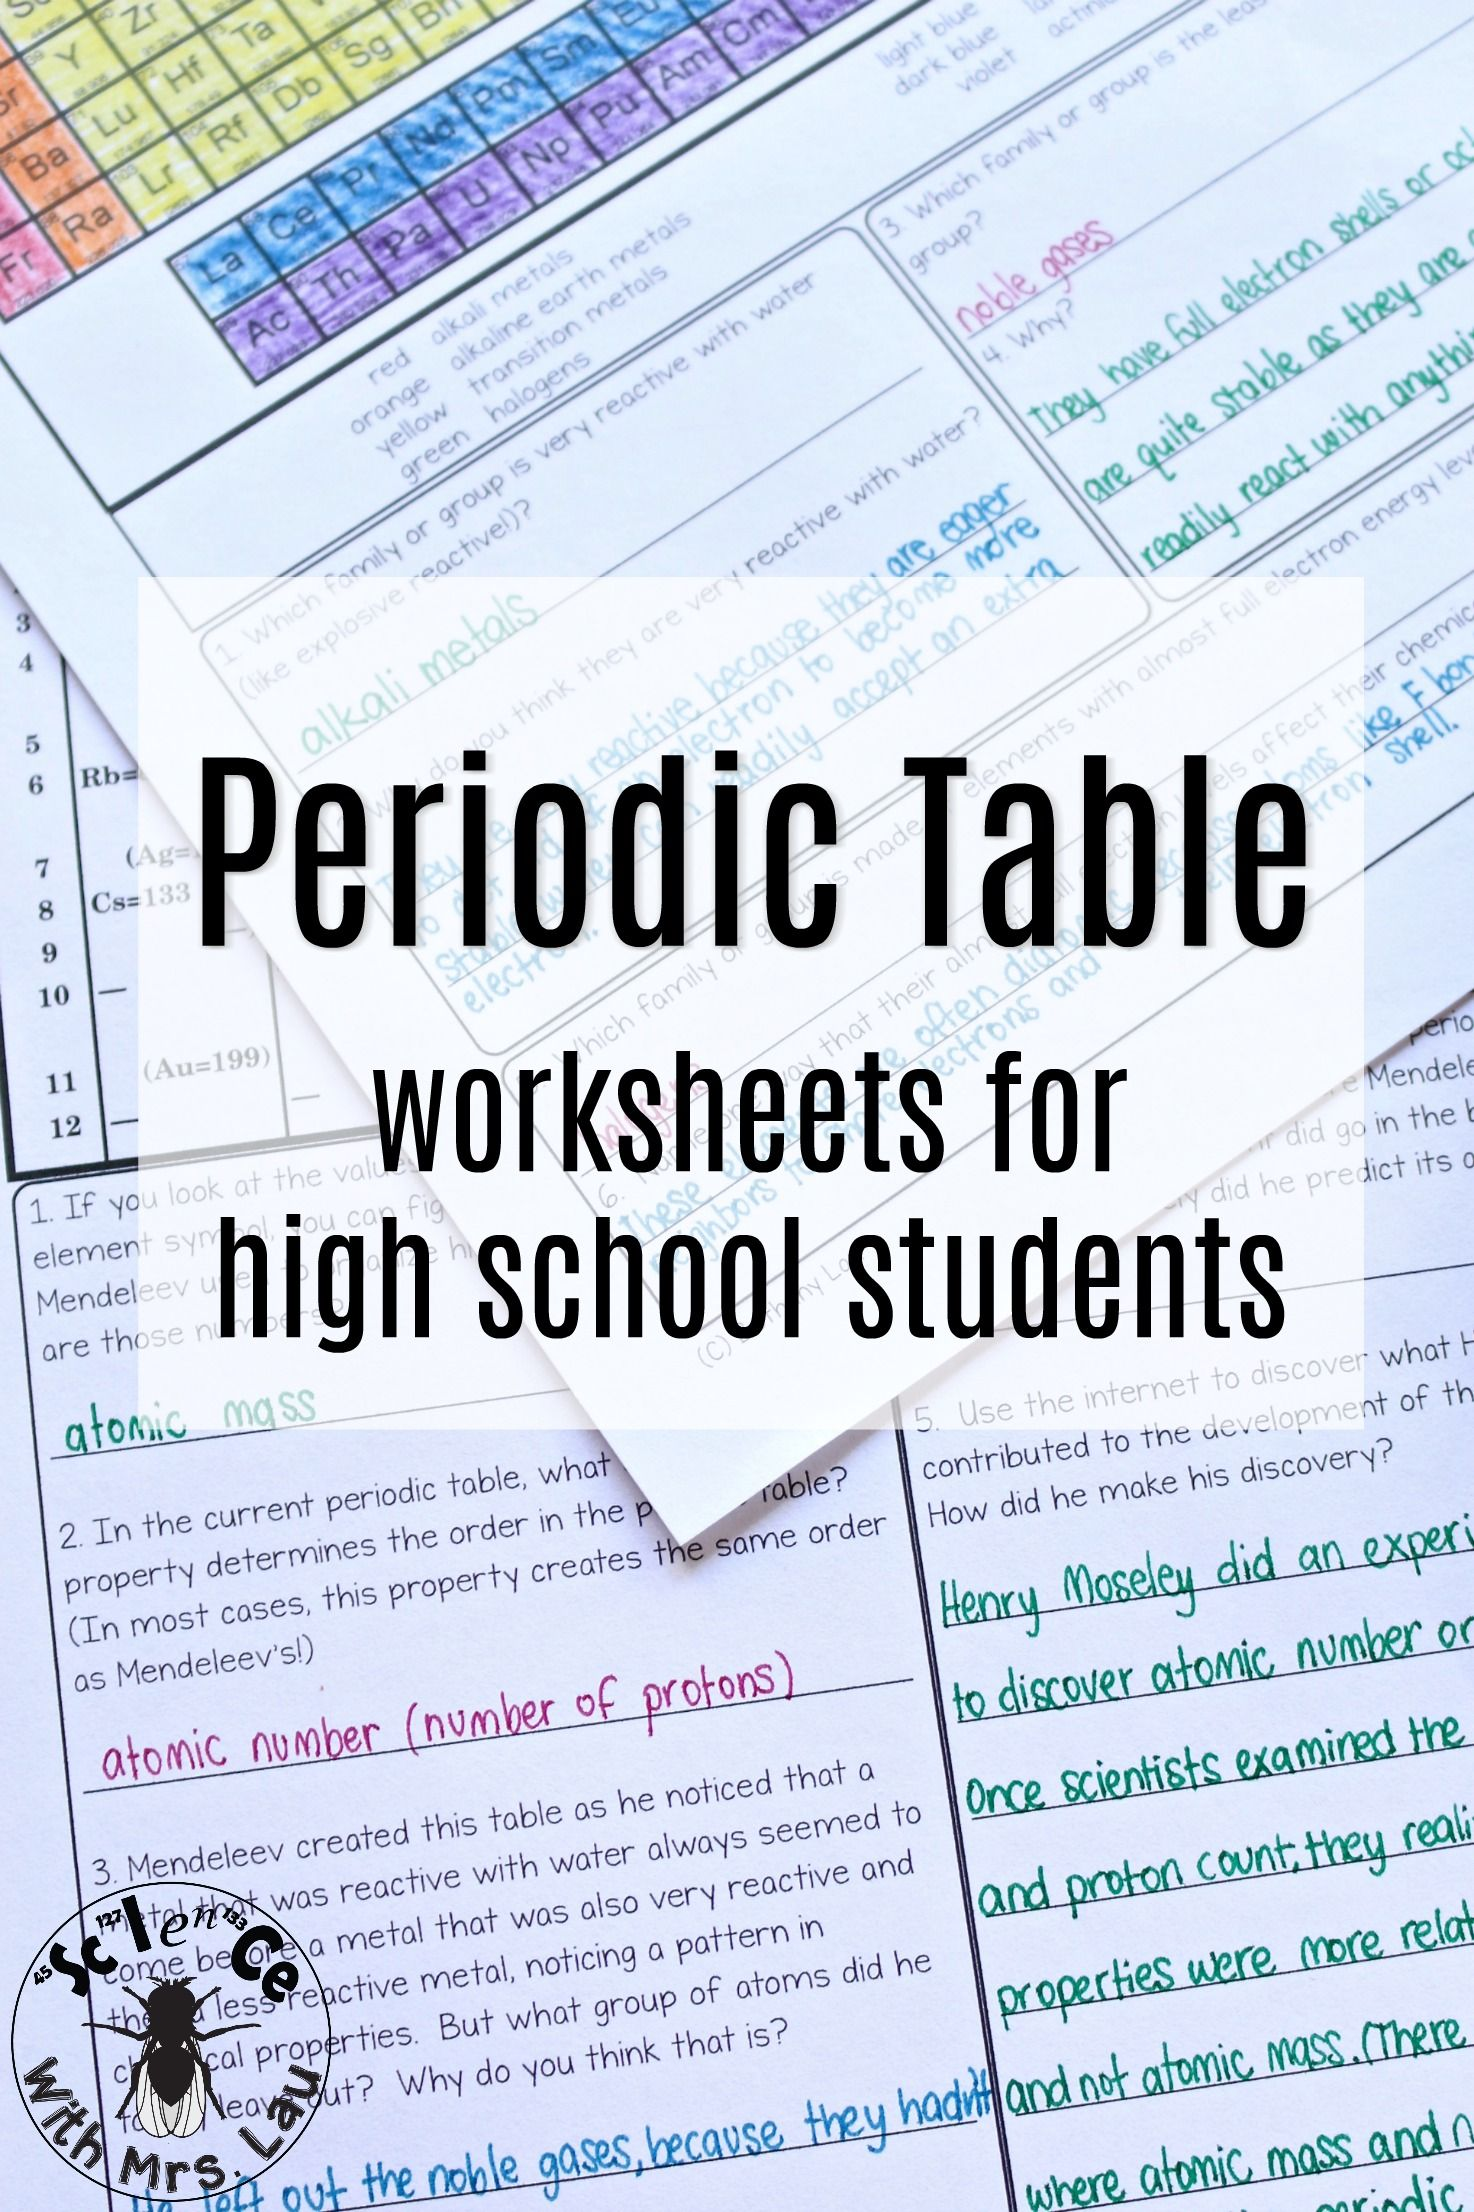 Periodic table trends chemistry homework pages ionic radius a whole set of periodic table trends worksheets covering everything from ionization energy electronegativity atomic radius ionic radius reactivity urtaz